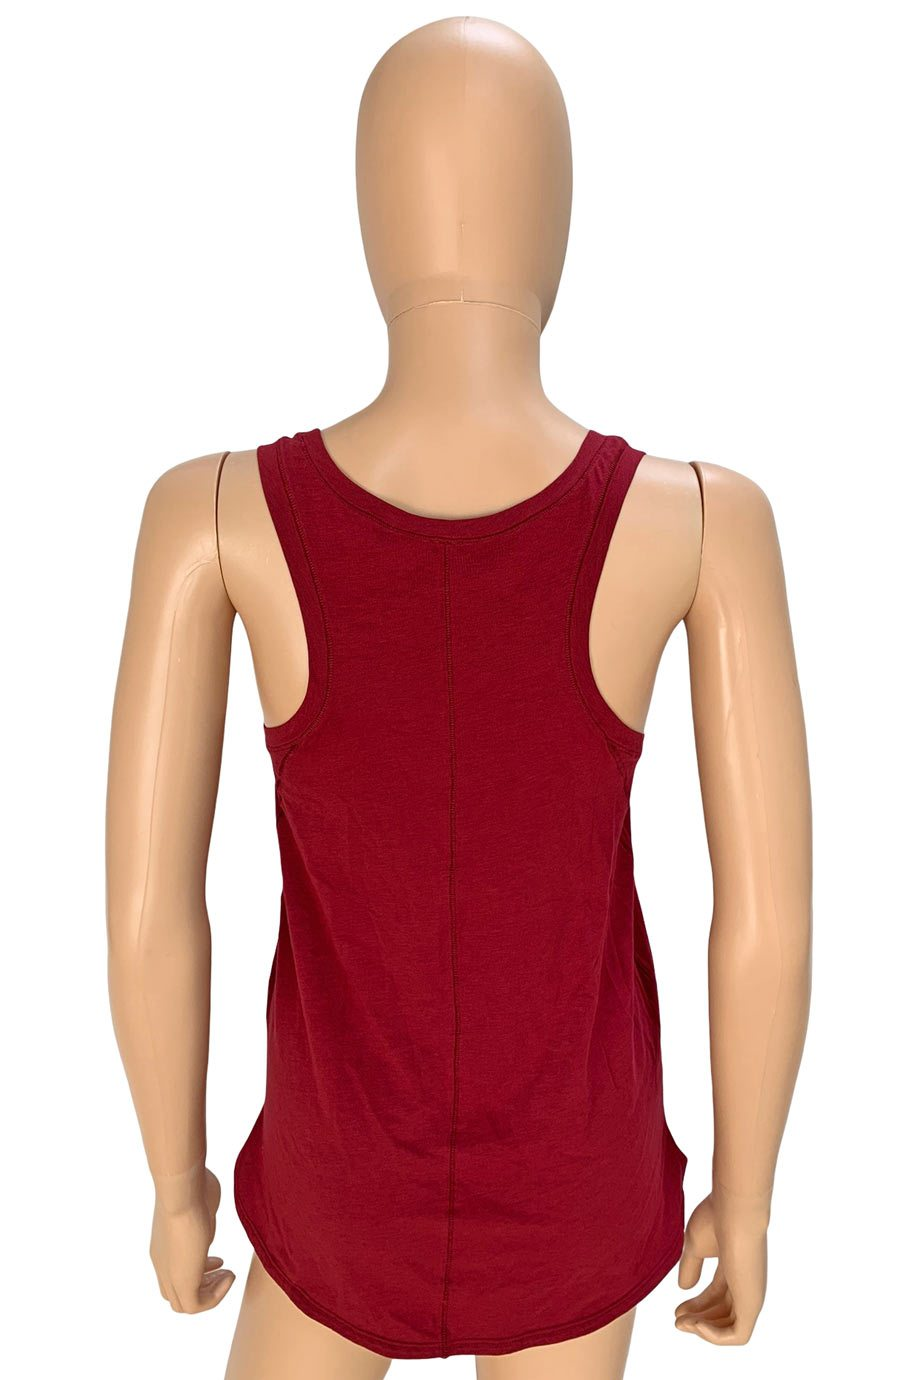 Lululemon Dark Red Knit Racerback Sleeveless Tank Top / Sz 6